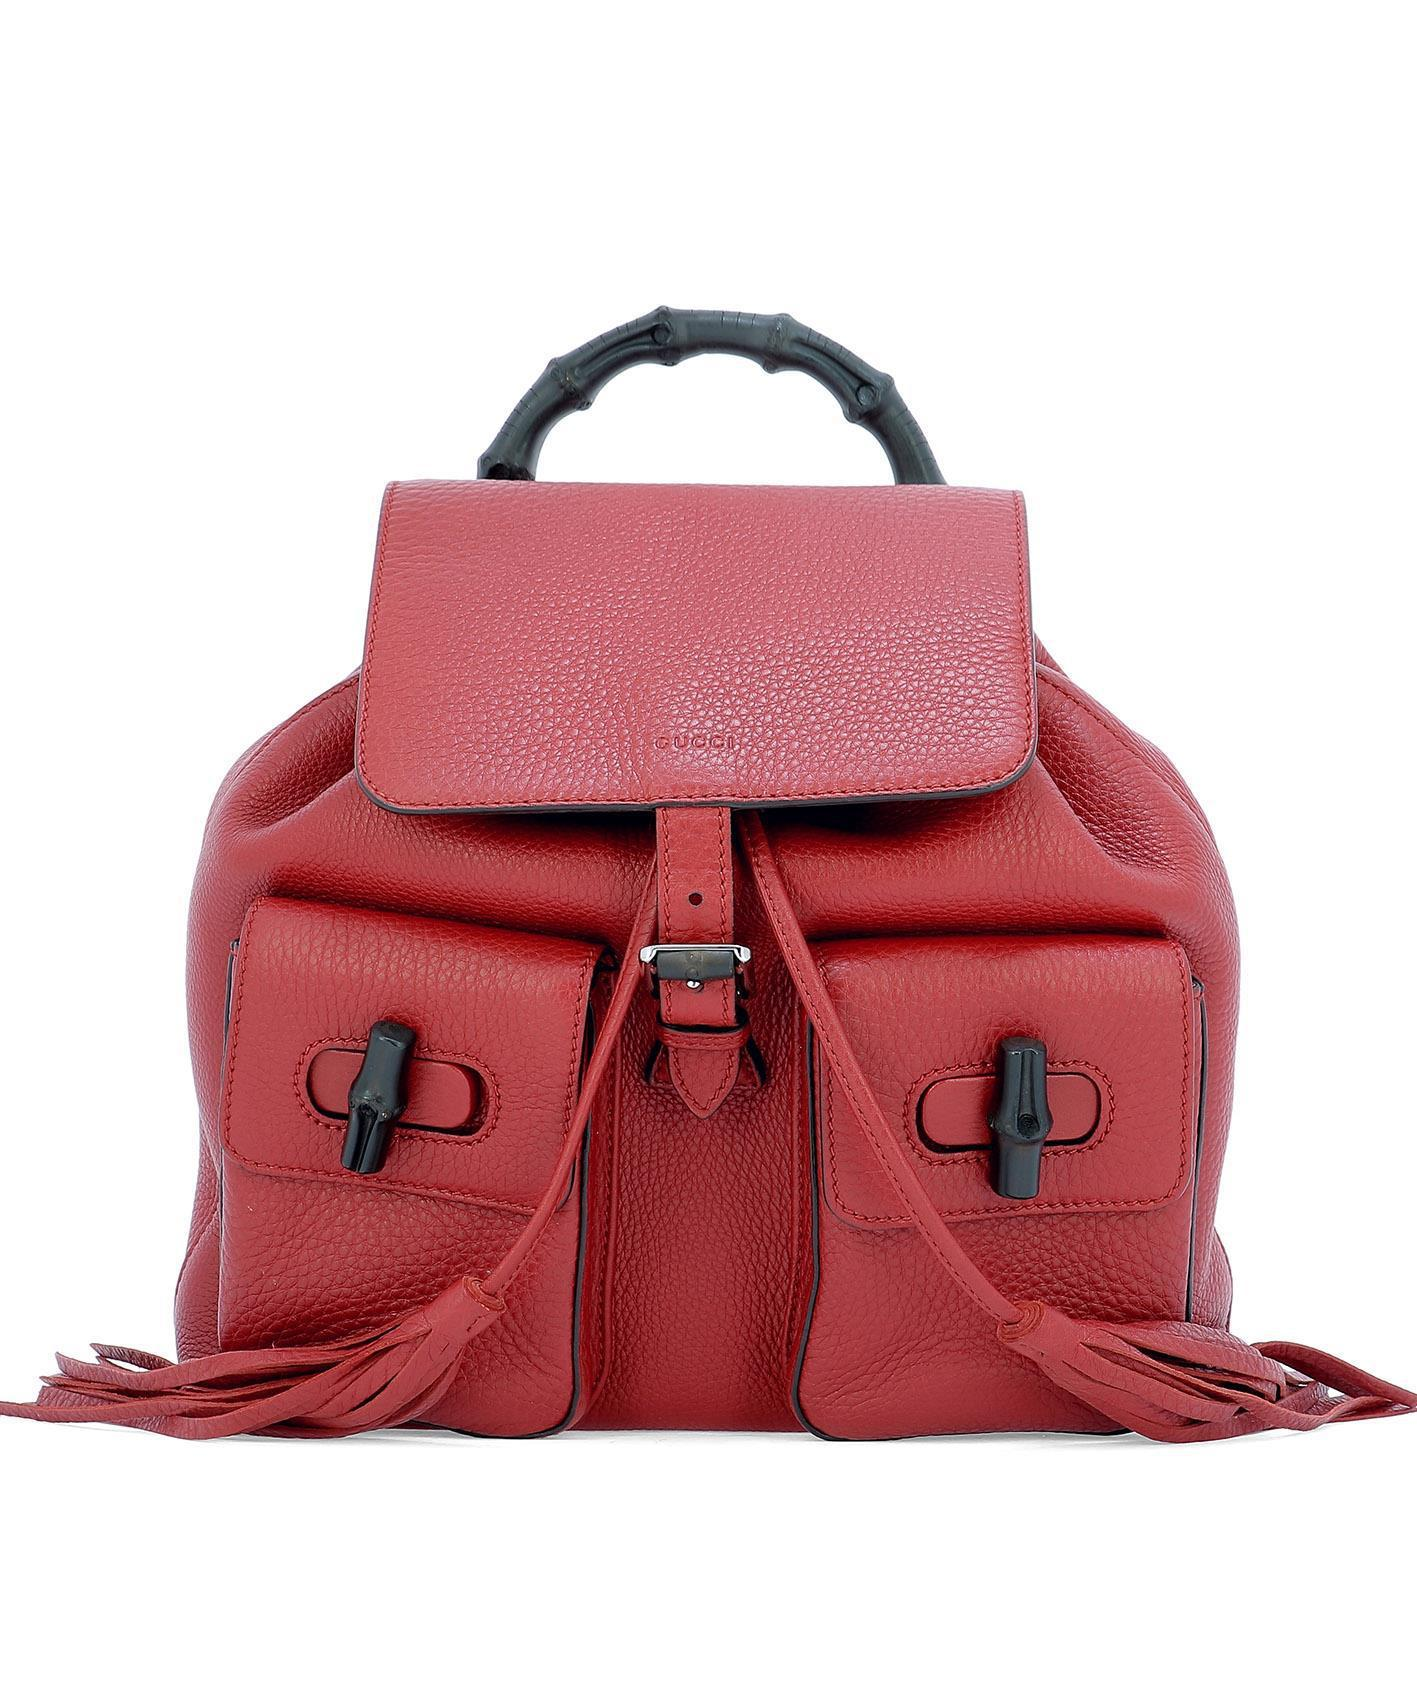 bc1550e7a1f9 Gucci Vintage Bamboo Backpack in Red - Lyst